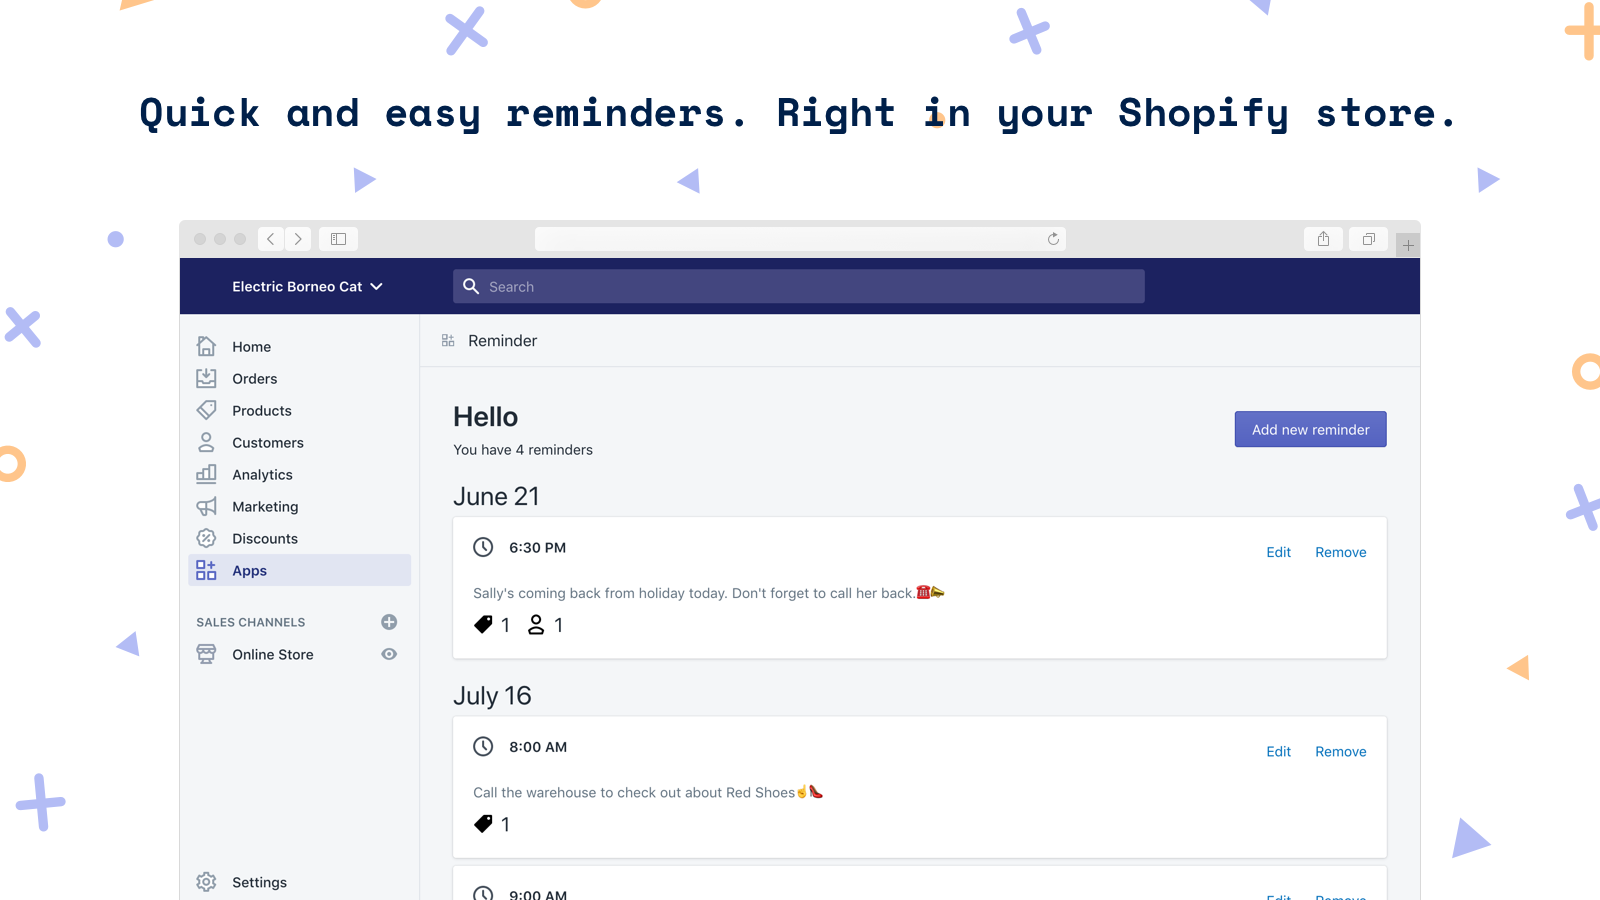 Quick and easy reminders. Right in your Shopify store.